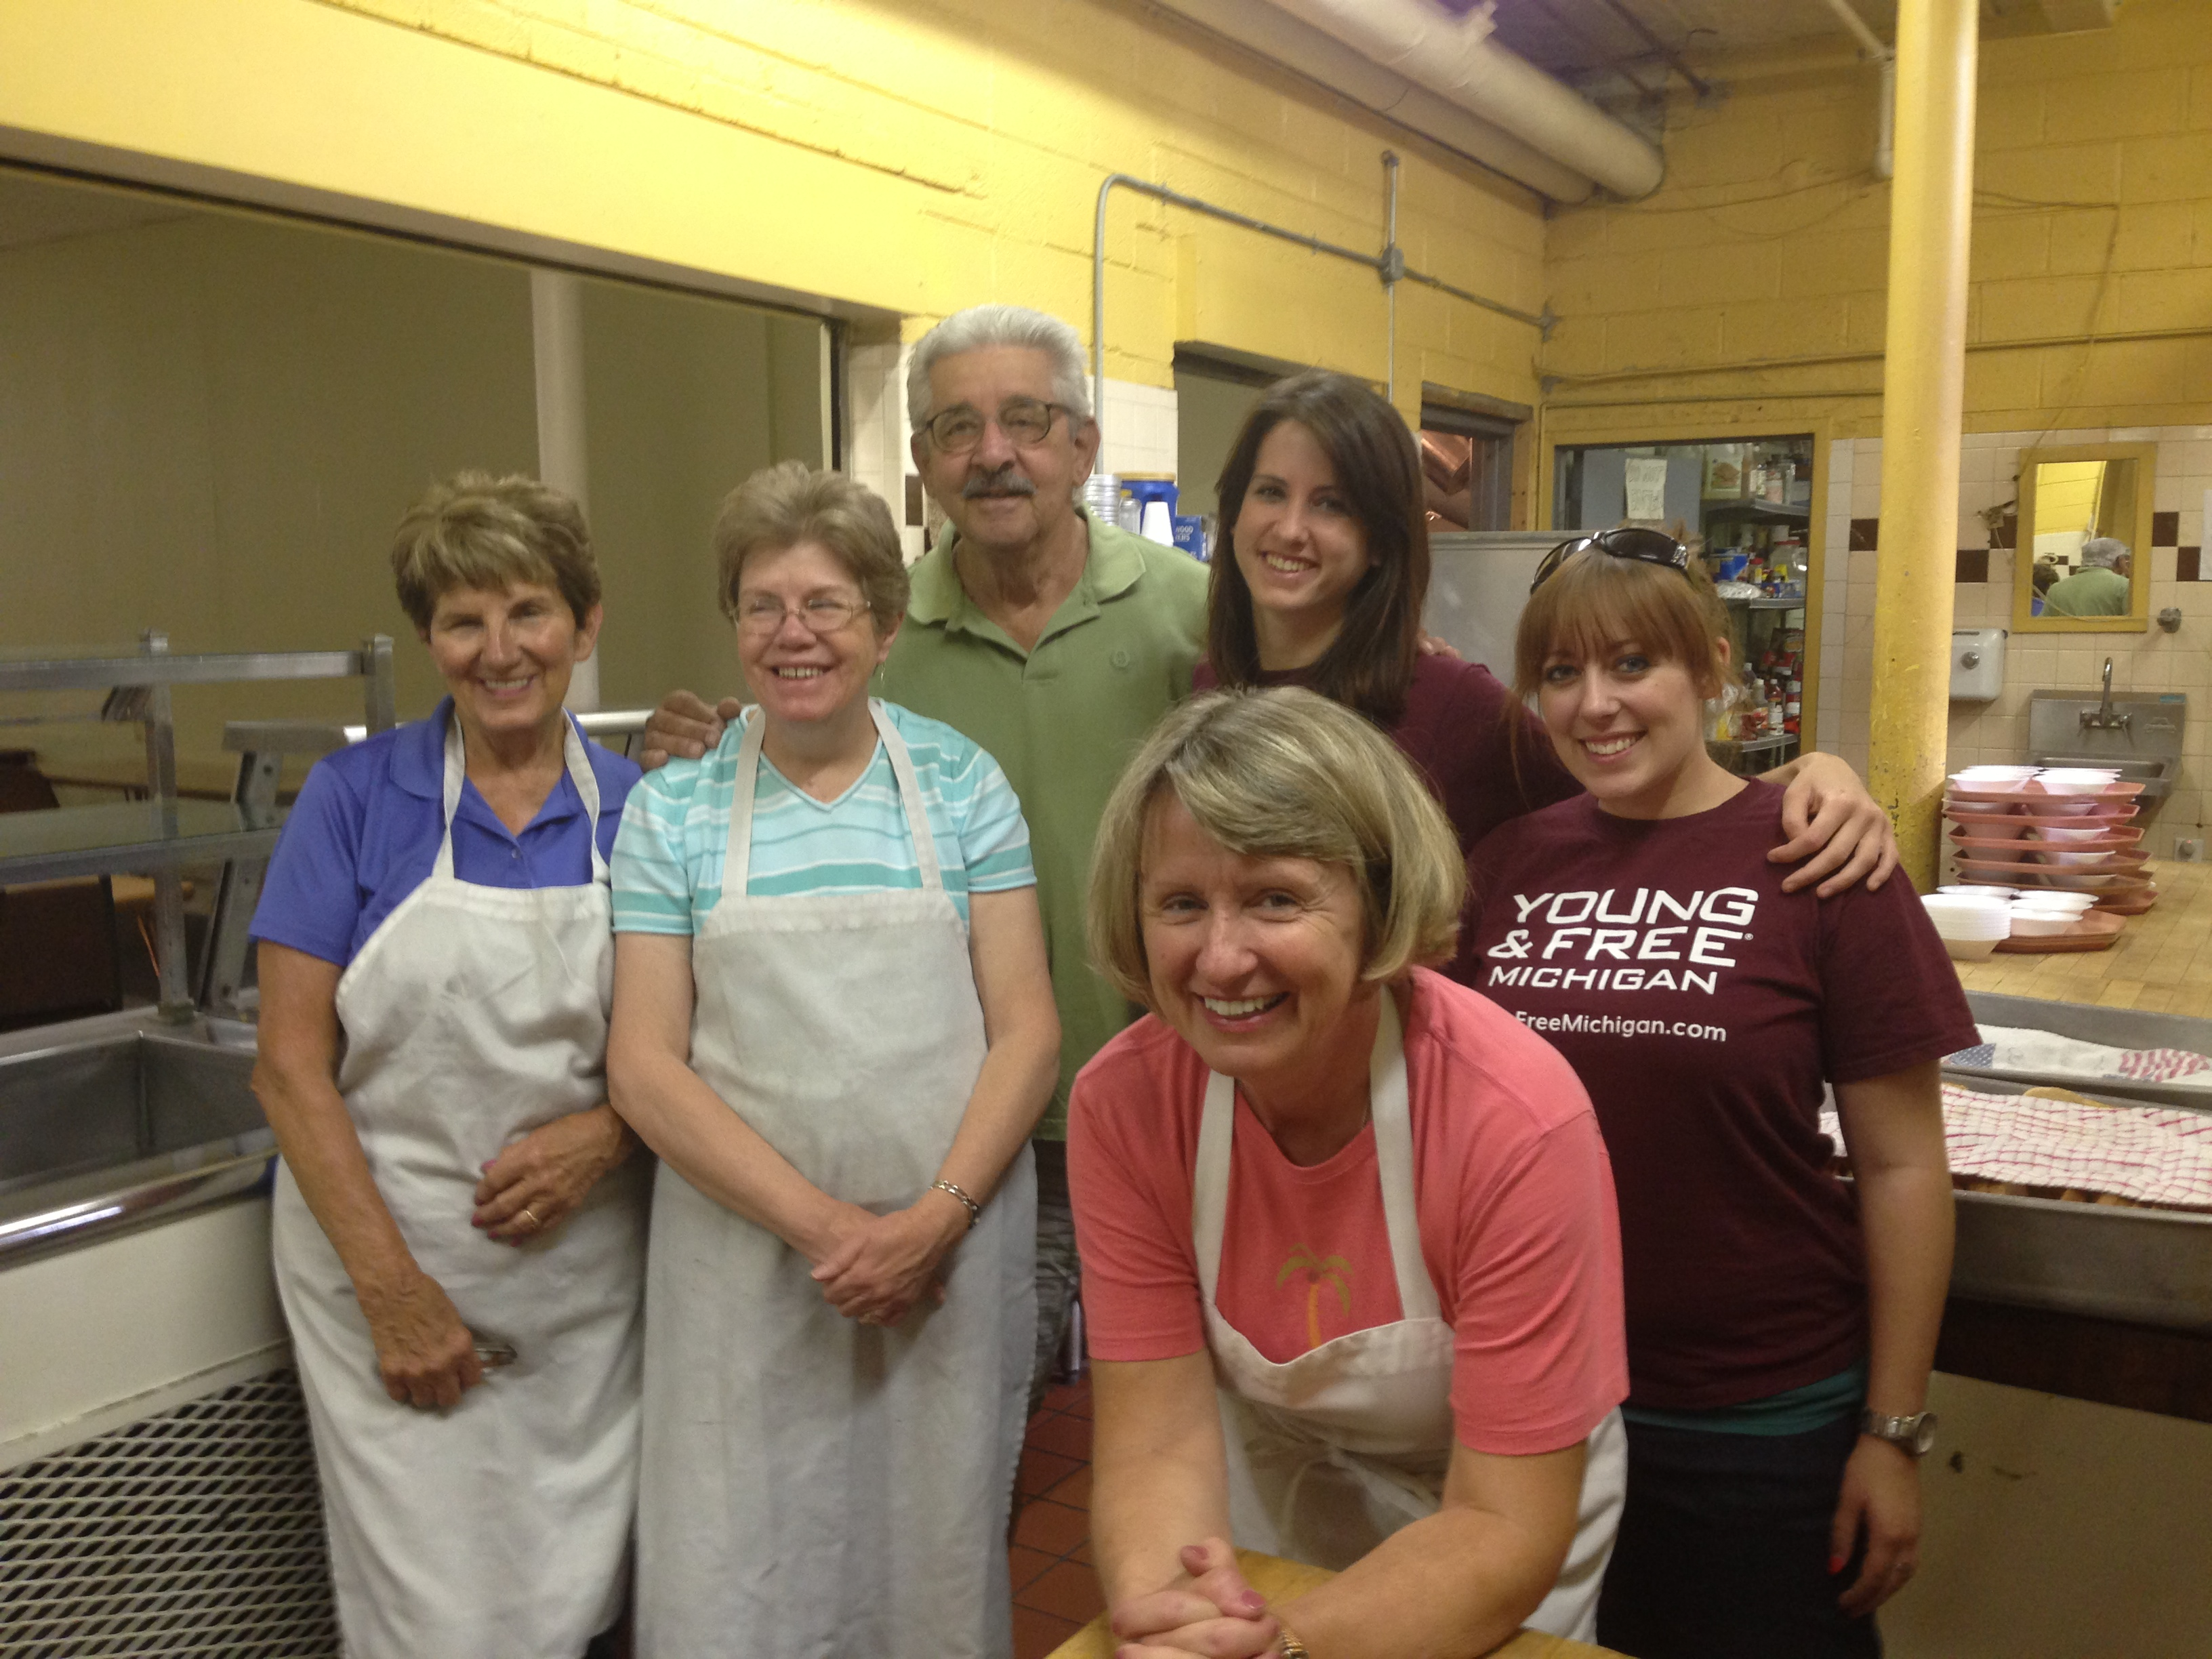 My Experience Volunteering At St Leos Soup Kitchen